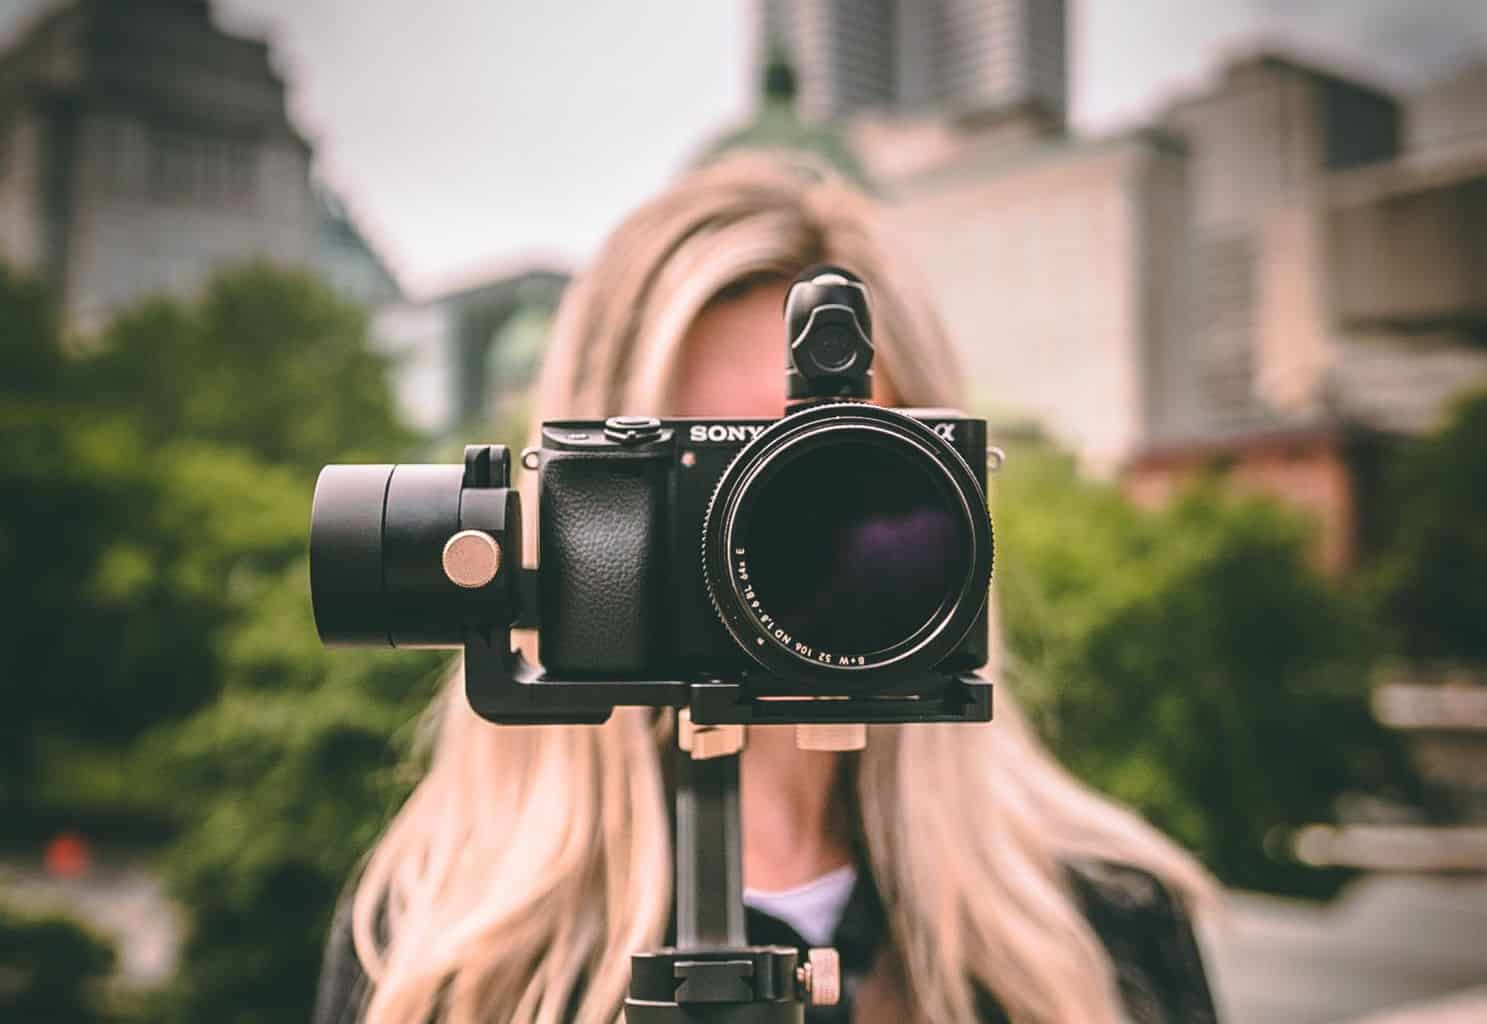 Tips on how to become an Instagram influencer video is important